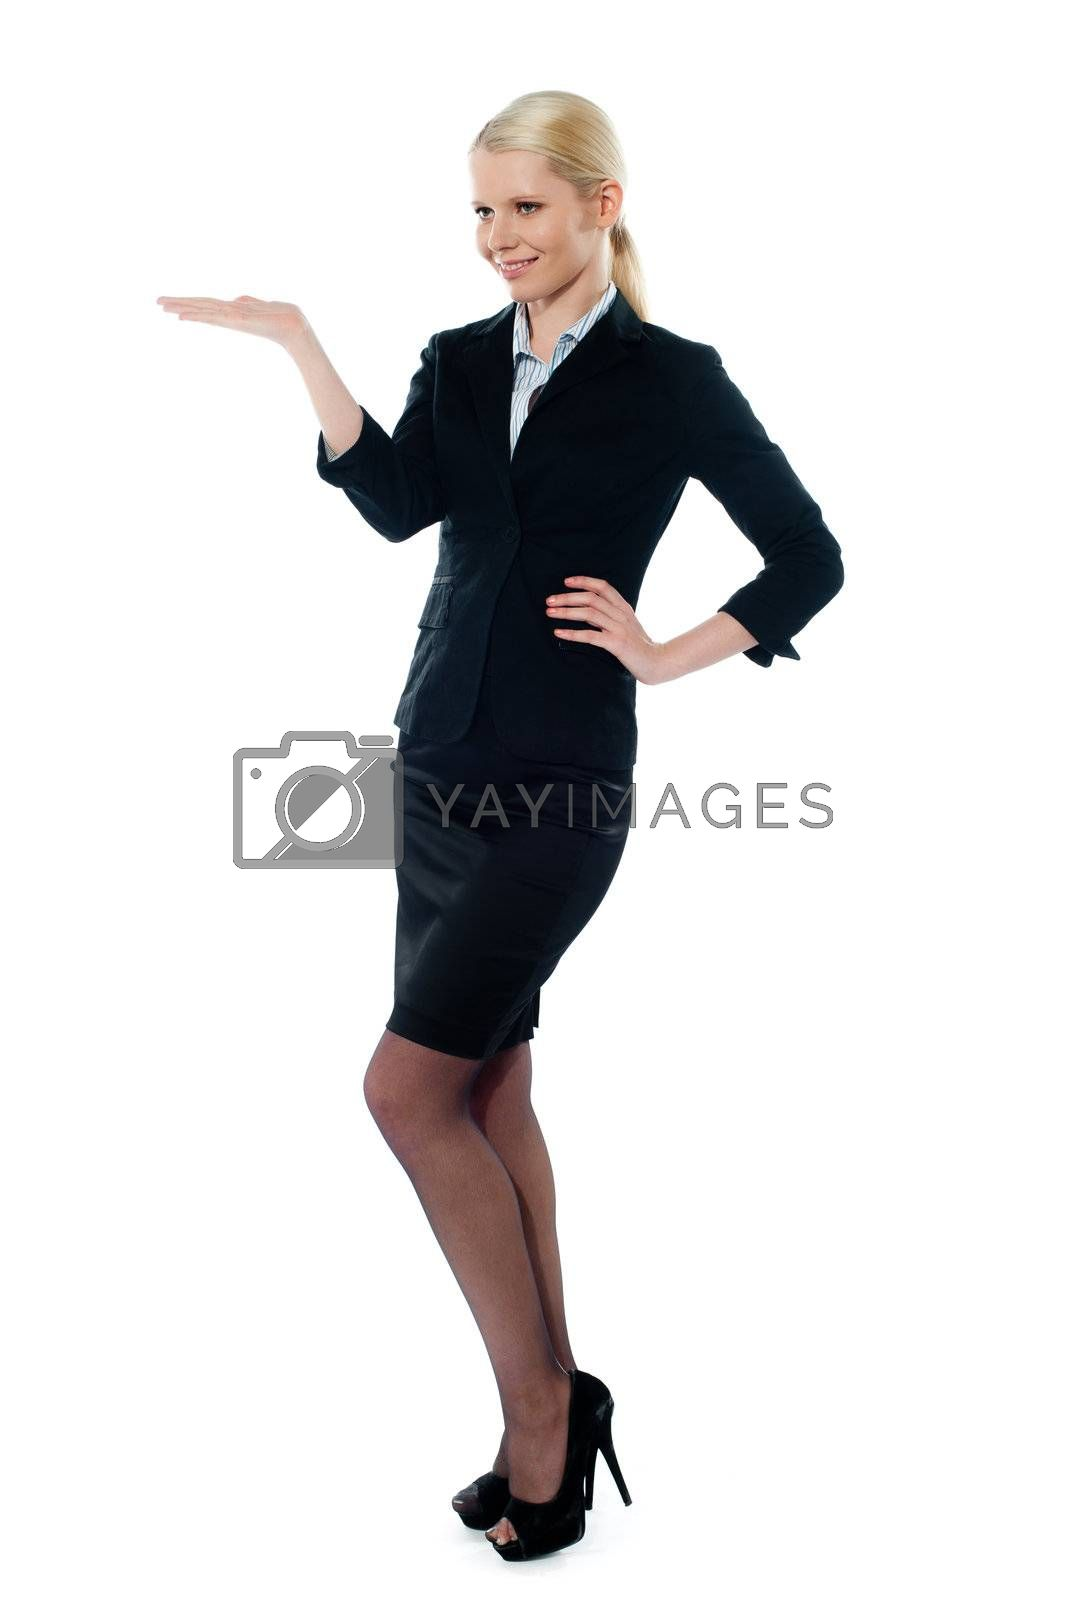 Full pose of charming young businesswoman posing with open palm and other hand on her waist